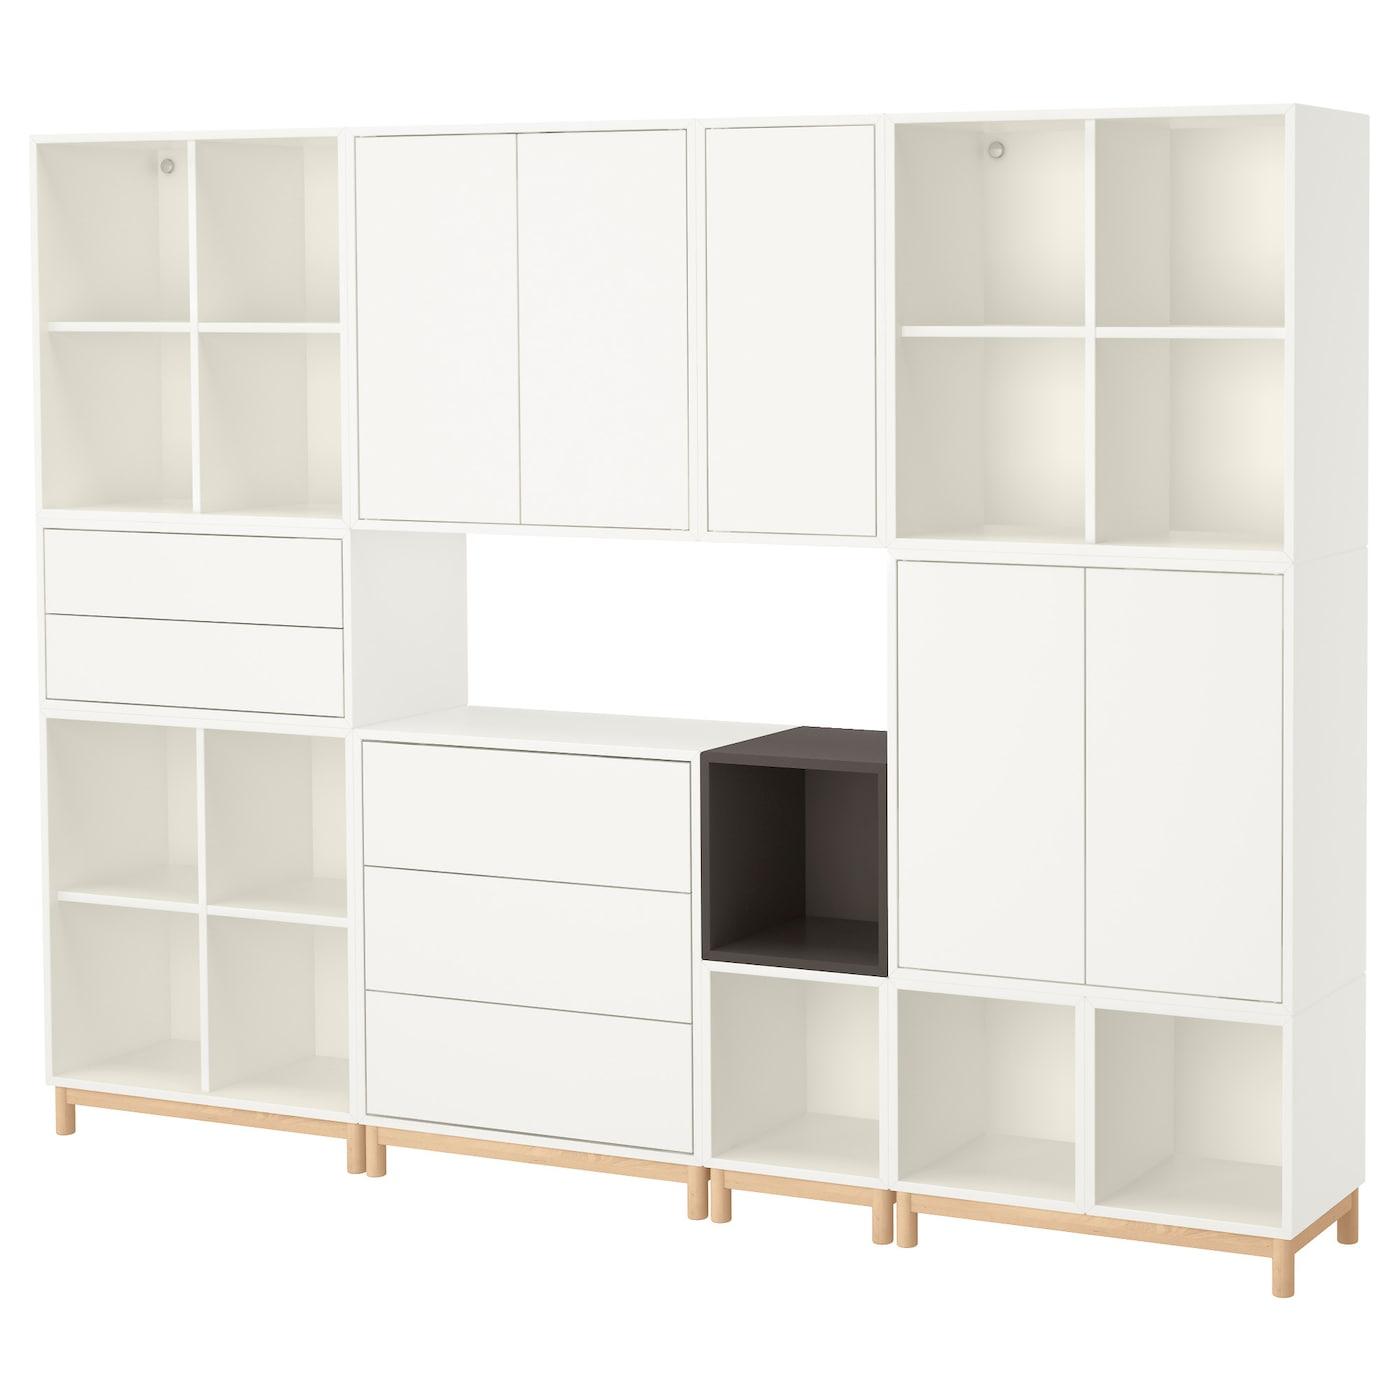 eket cabinet combination with legs white dark grey 245 x 35 x 185 cm ikea. Black Bedroom Furniture Sets. Home Design Ideas